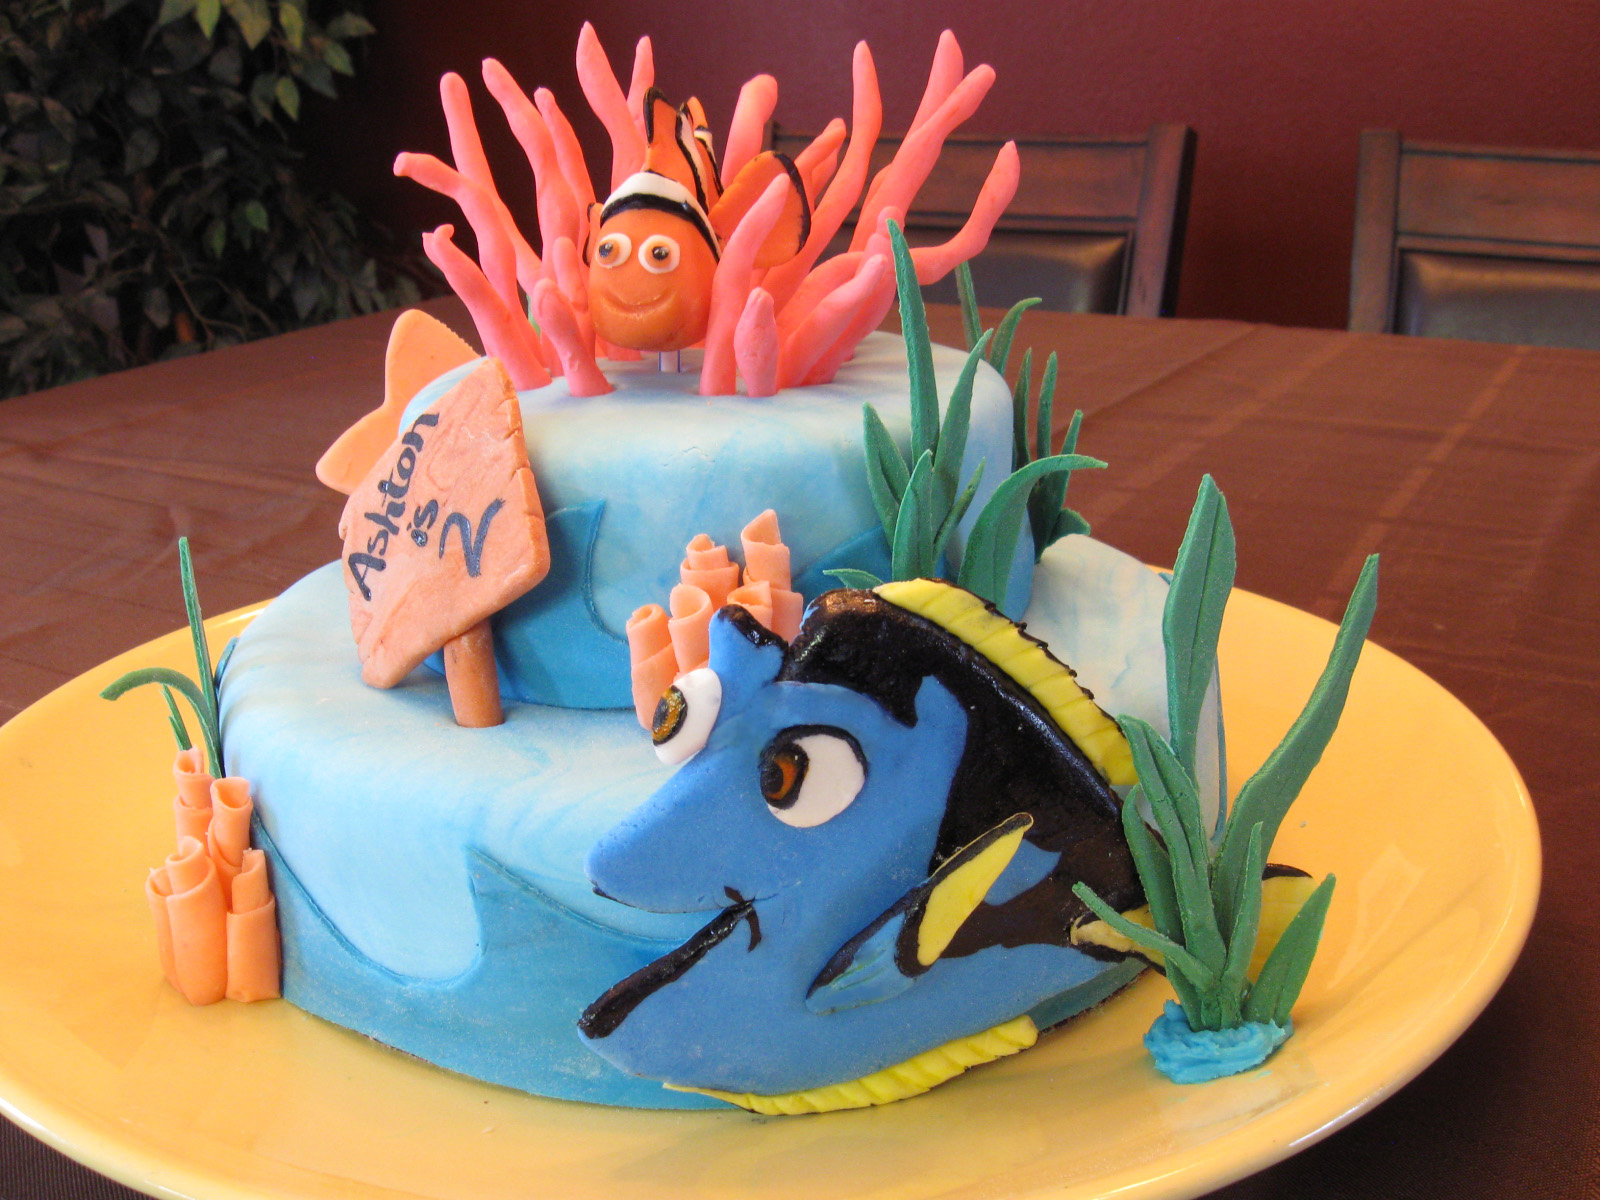 Cakes By Cami Jo Nemo Cake - Nemo fish birthday cake